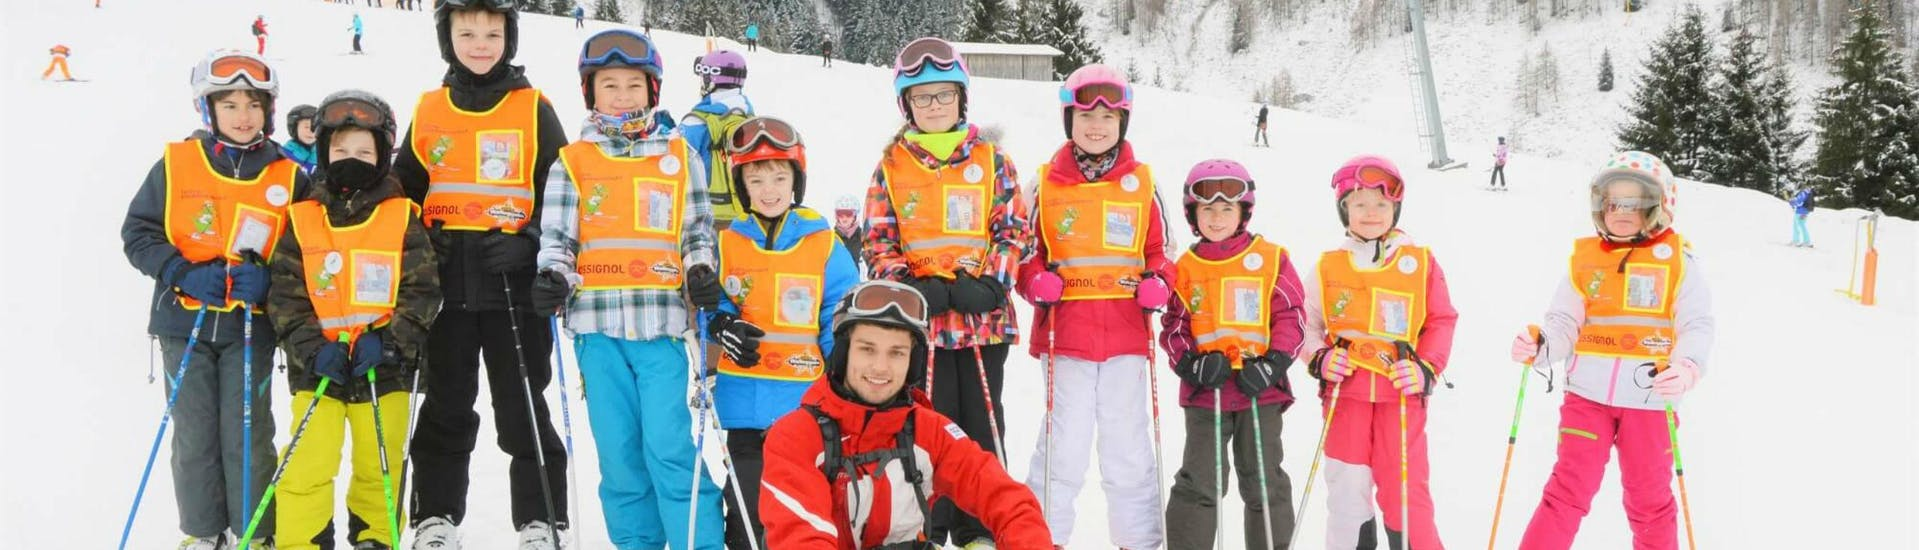 "A group of children and their ski instructor from S4 Snowsport Fieberbrunn are smiling at the camera during their Kids Ski Lessons ""Juniors programme"" (15-18 years)."